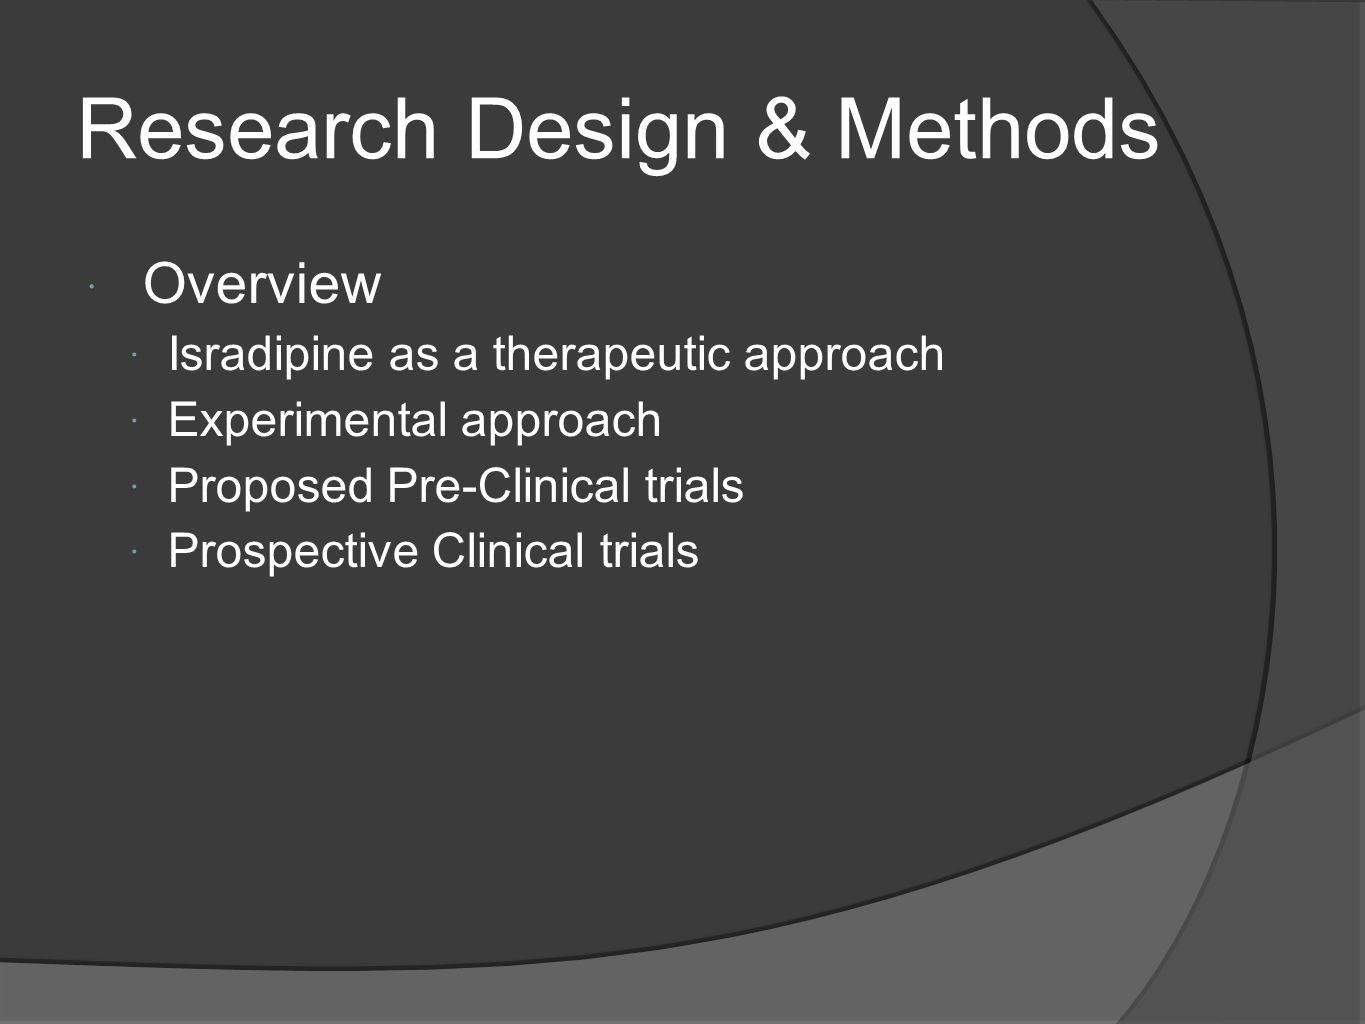 Research Design & Methods